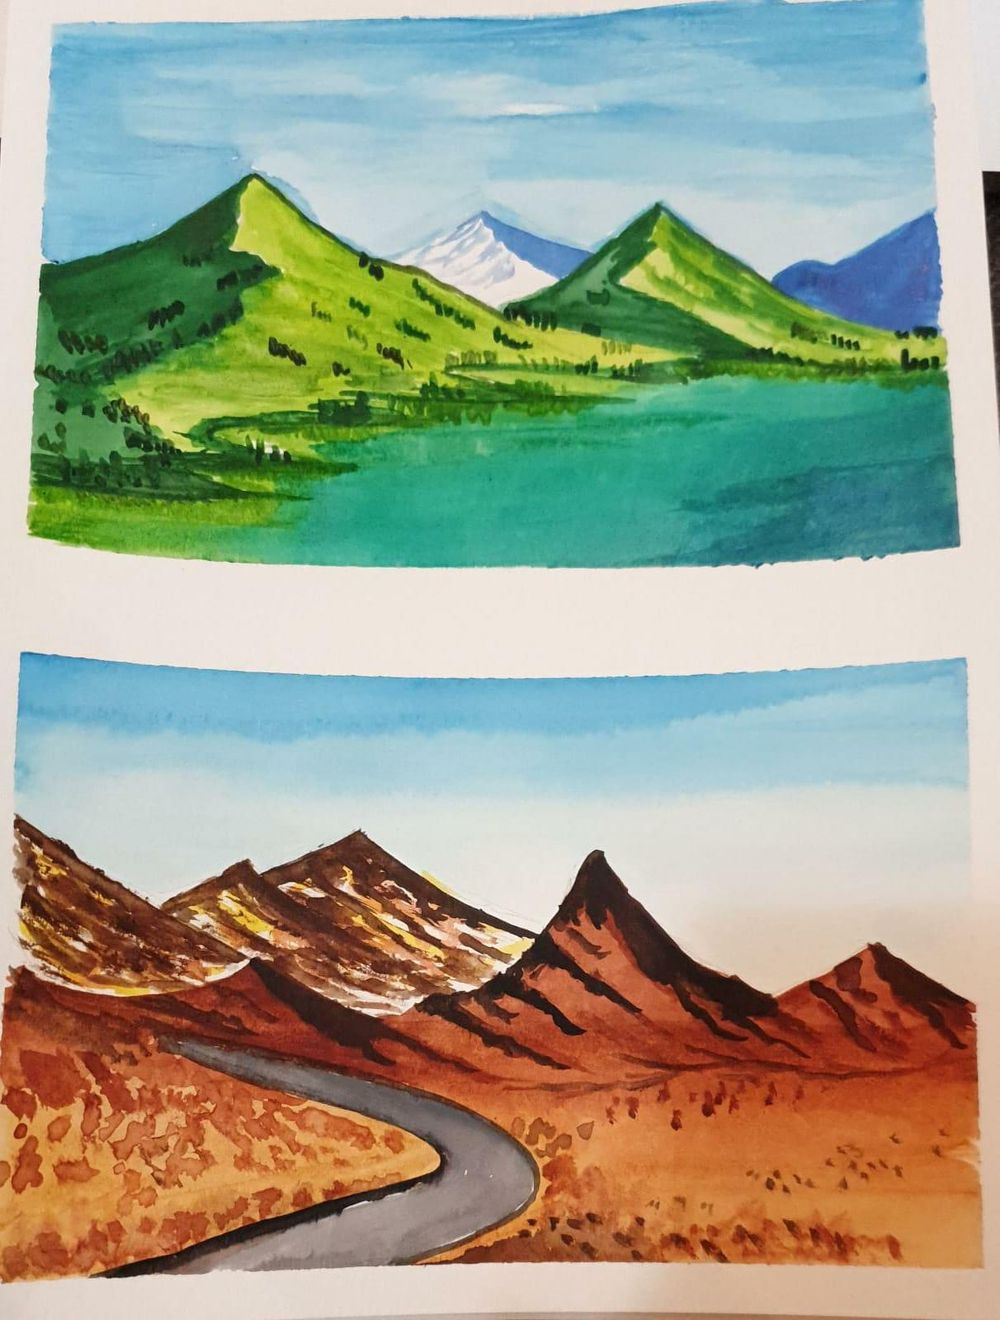 watercolor landscape master class with z - image 1 - student project